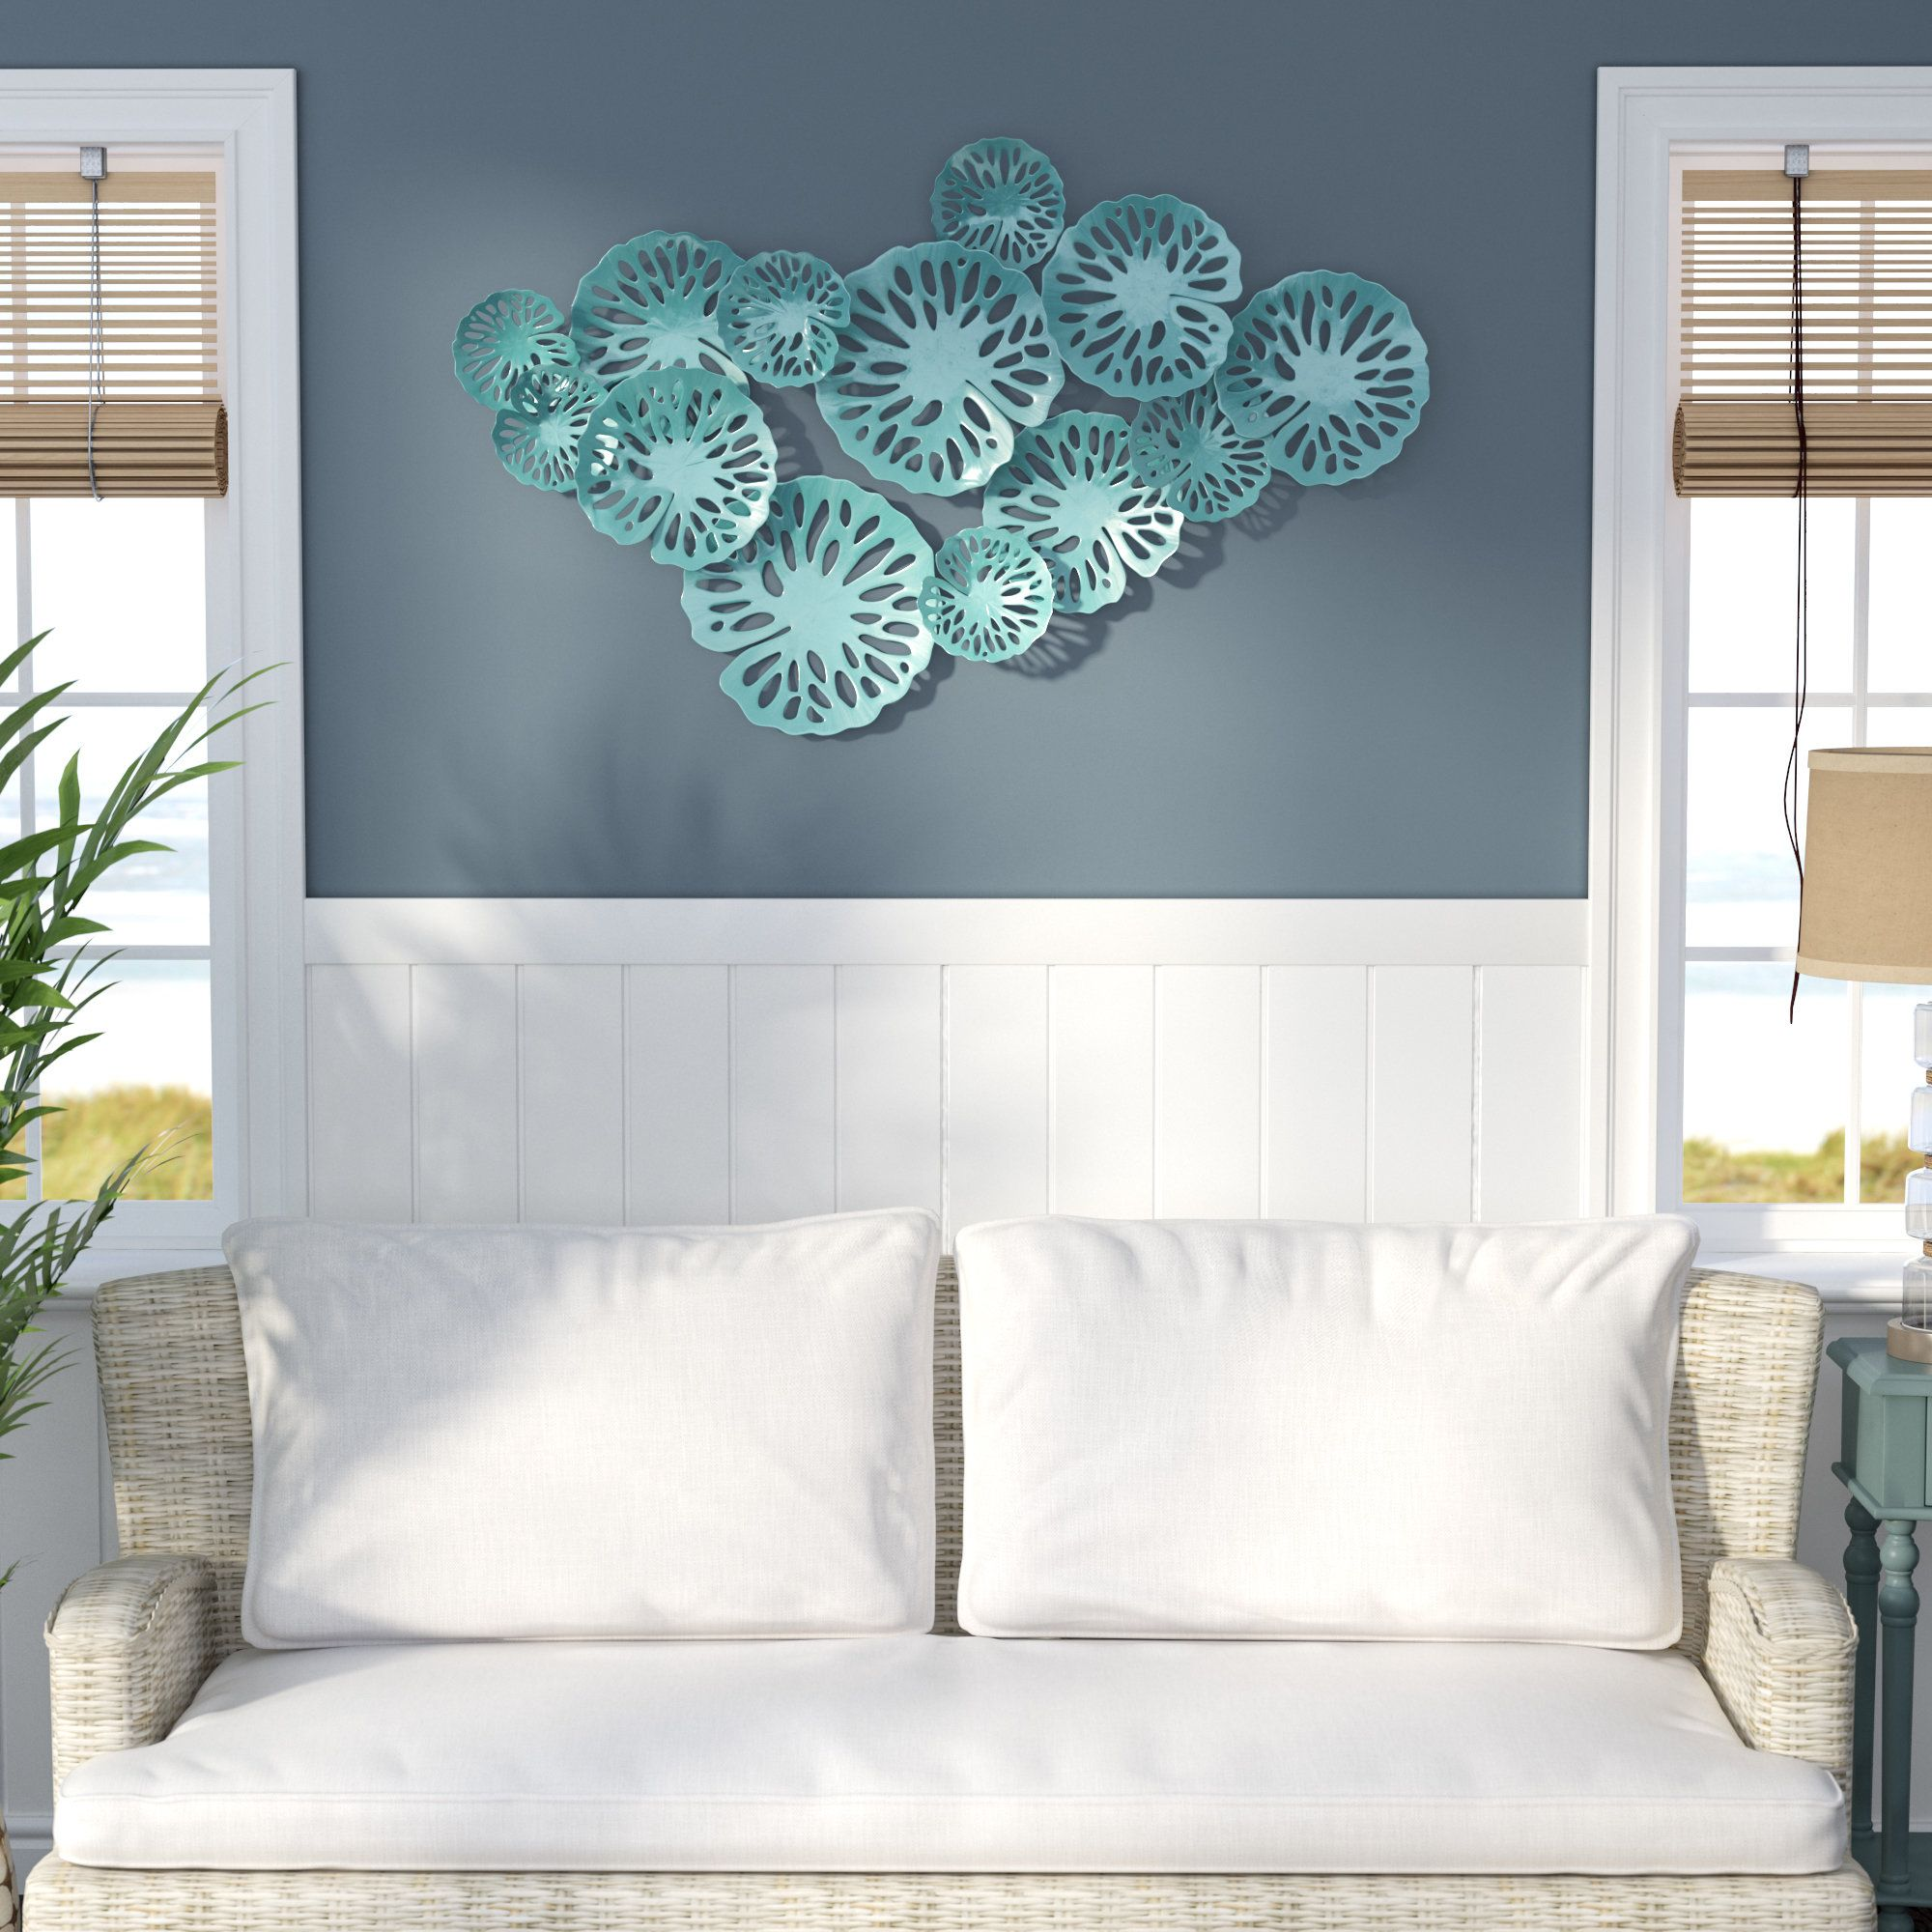 Image Result For How To Decorate A Lanai Wall Plate Wall Decor Fish Wall Decor Green Wall Decor